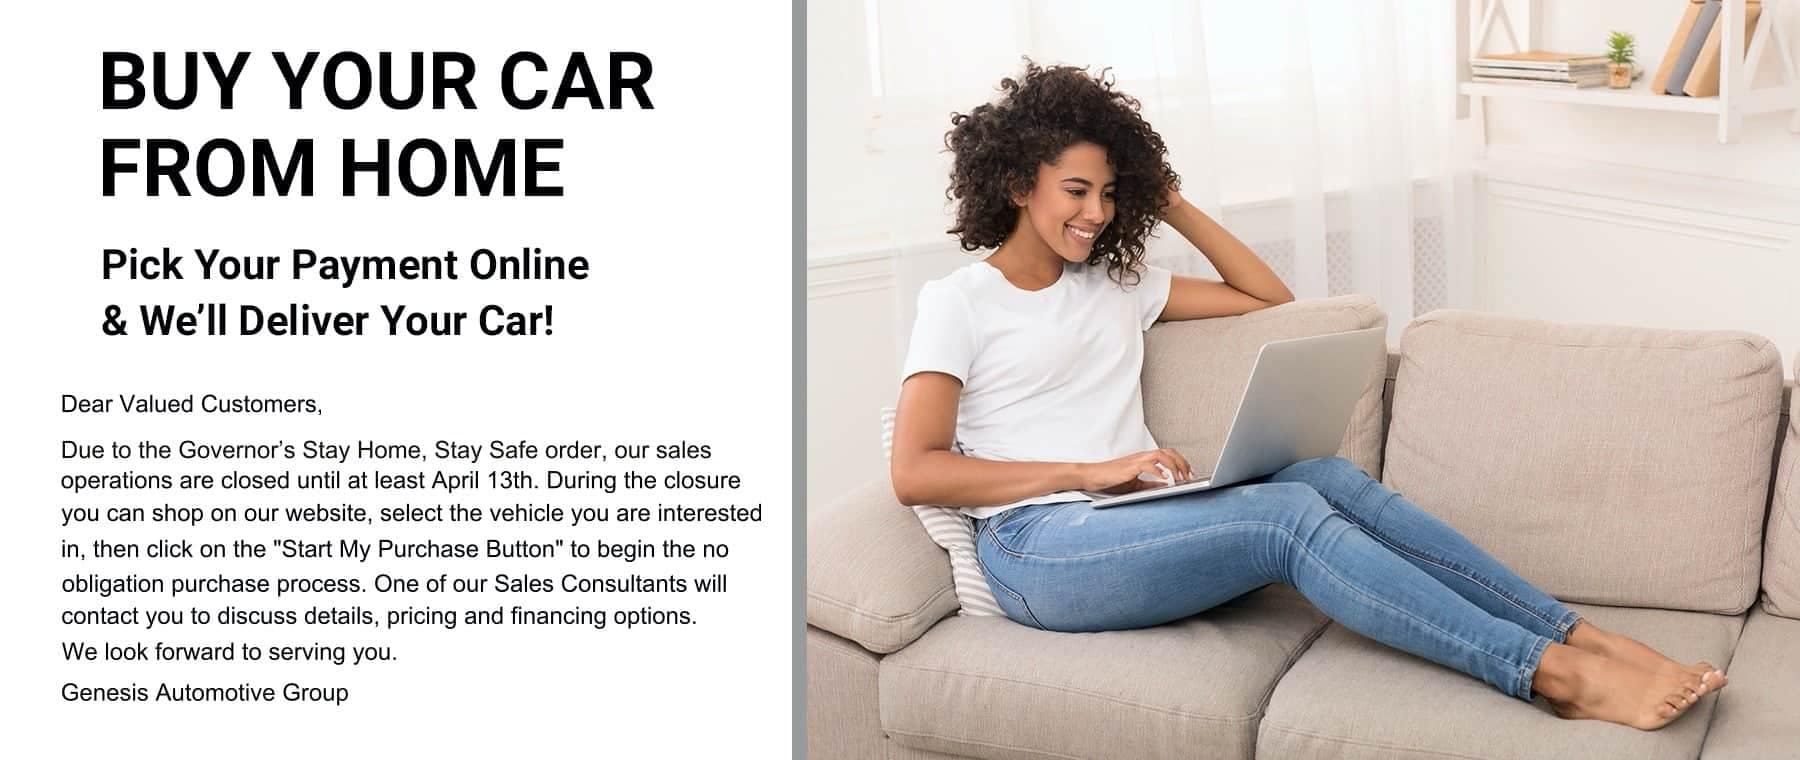 Buy Your Car From Home - Pick Your Payment Online & We'll Deliver Your Car!